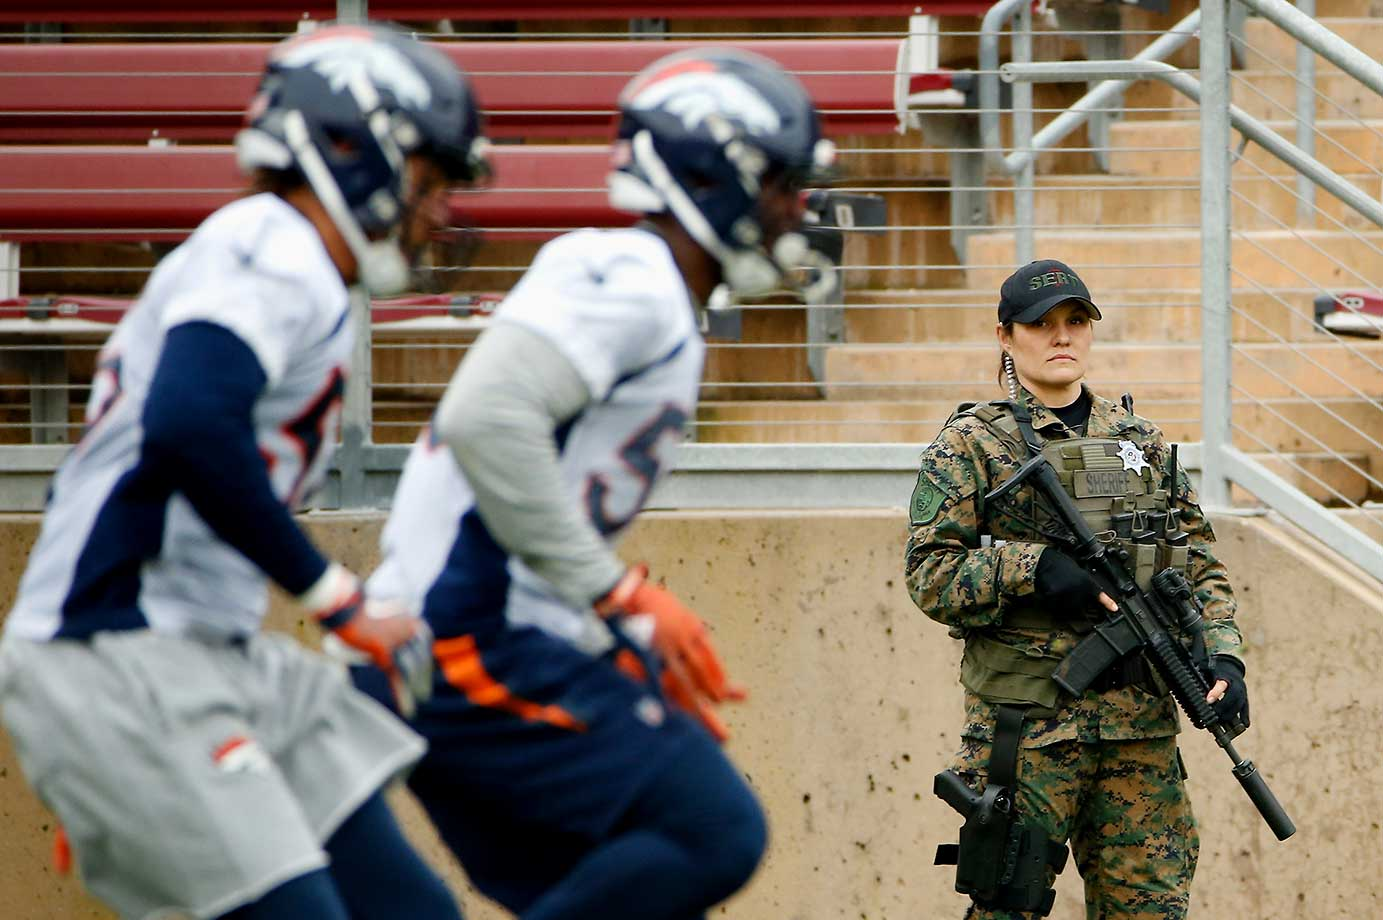 A security officer watches the Denver Broncos practice at Stanford University.